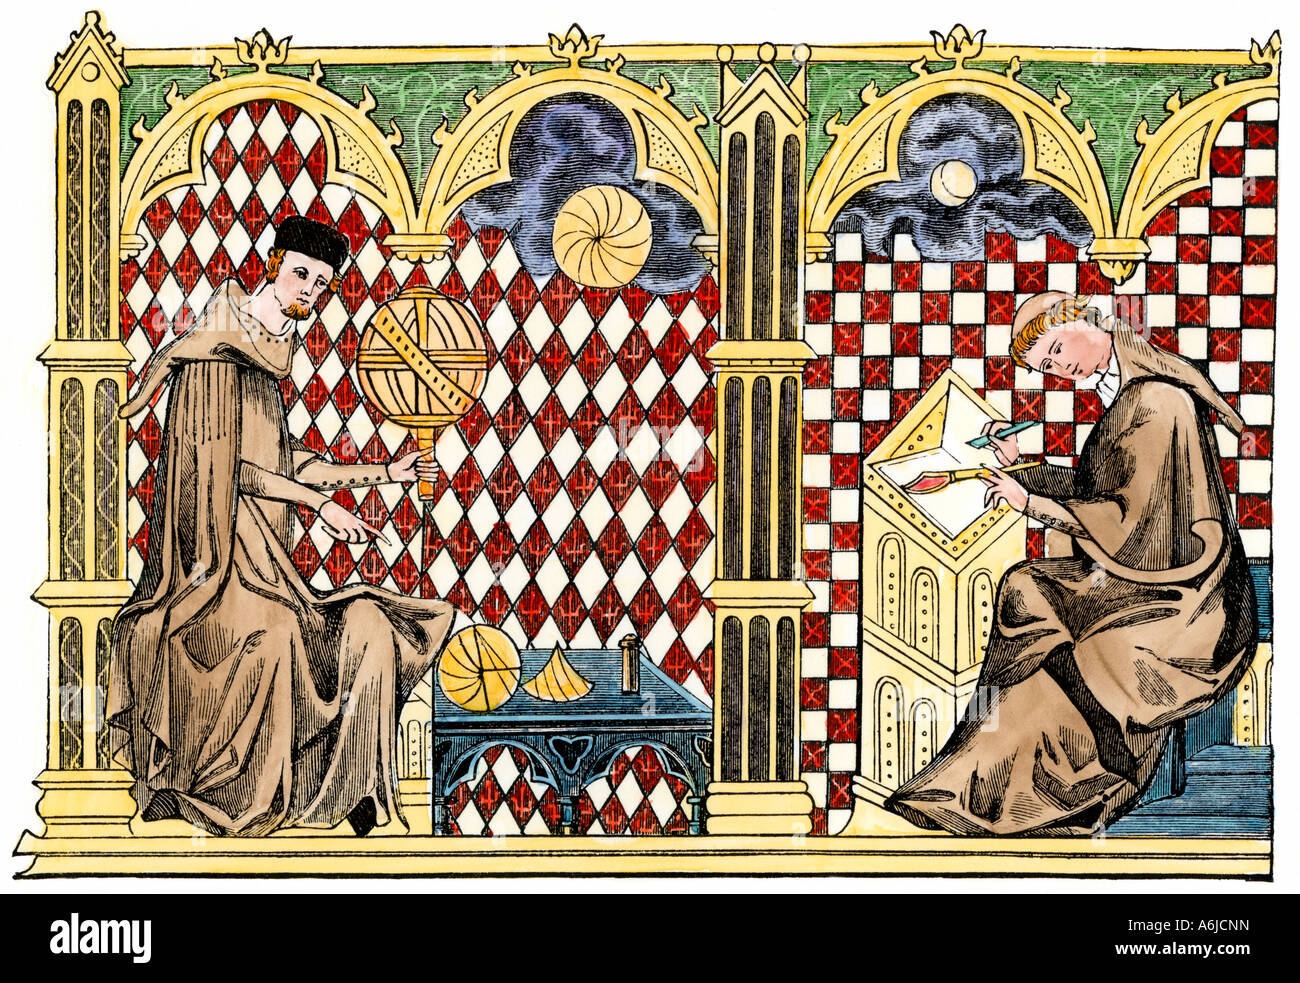 Monk mathematician studying a globe and another scholar copying a manuscript 1200s. Hand-colored woodcut - Stock Image